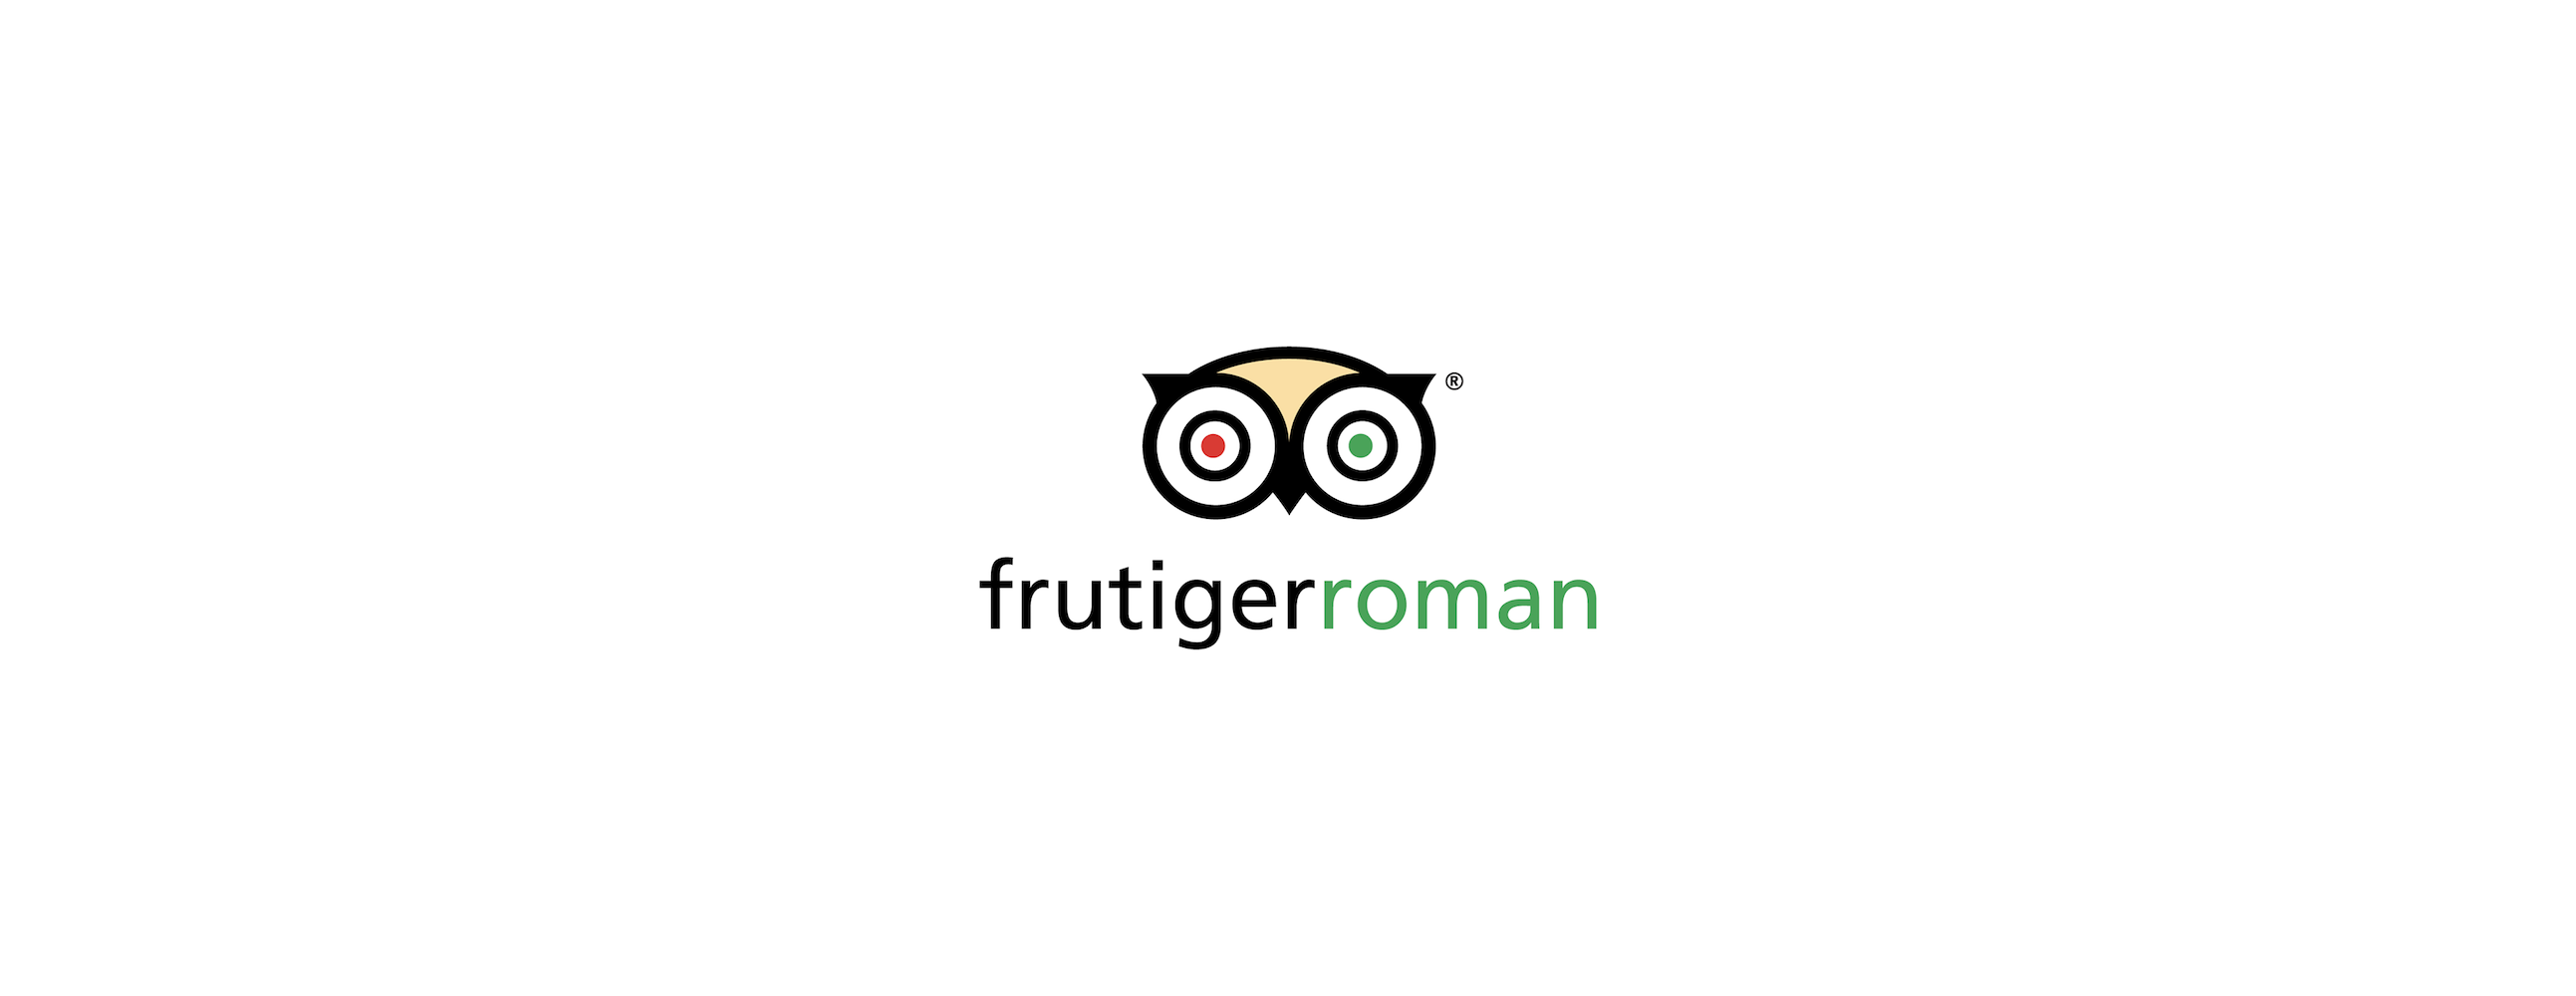 Logofonts Emanuele Abrate | Collater.al